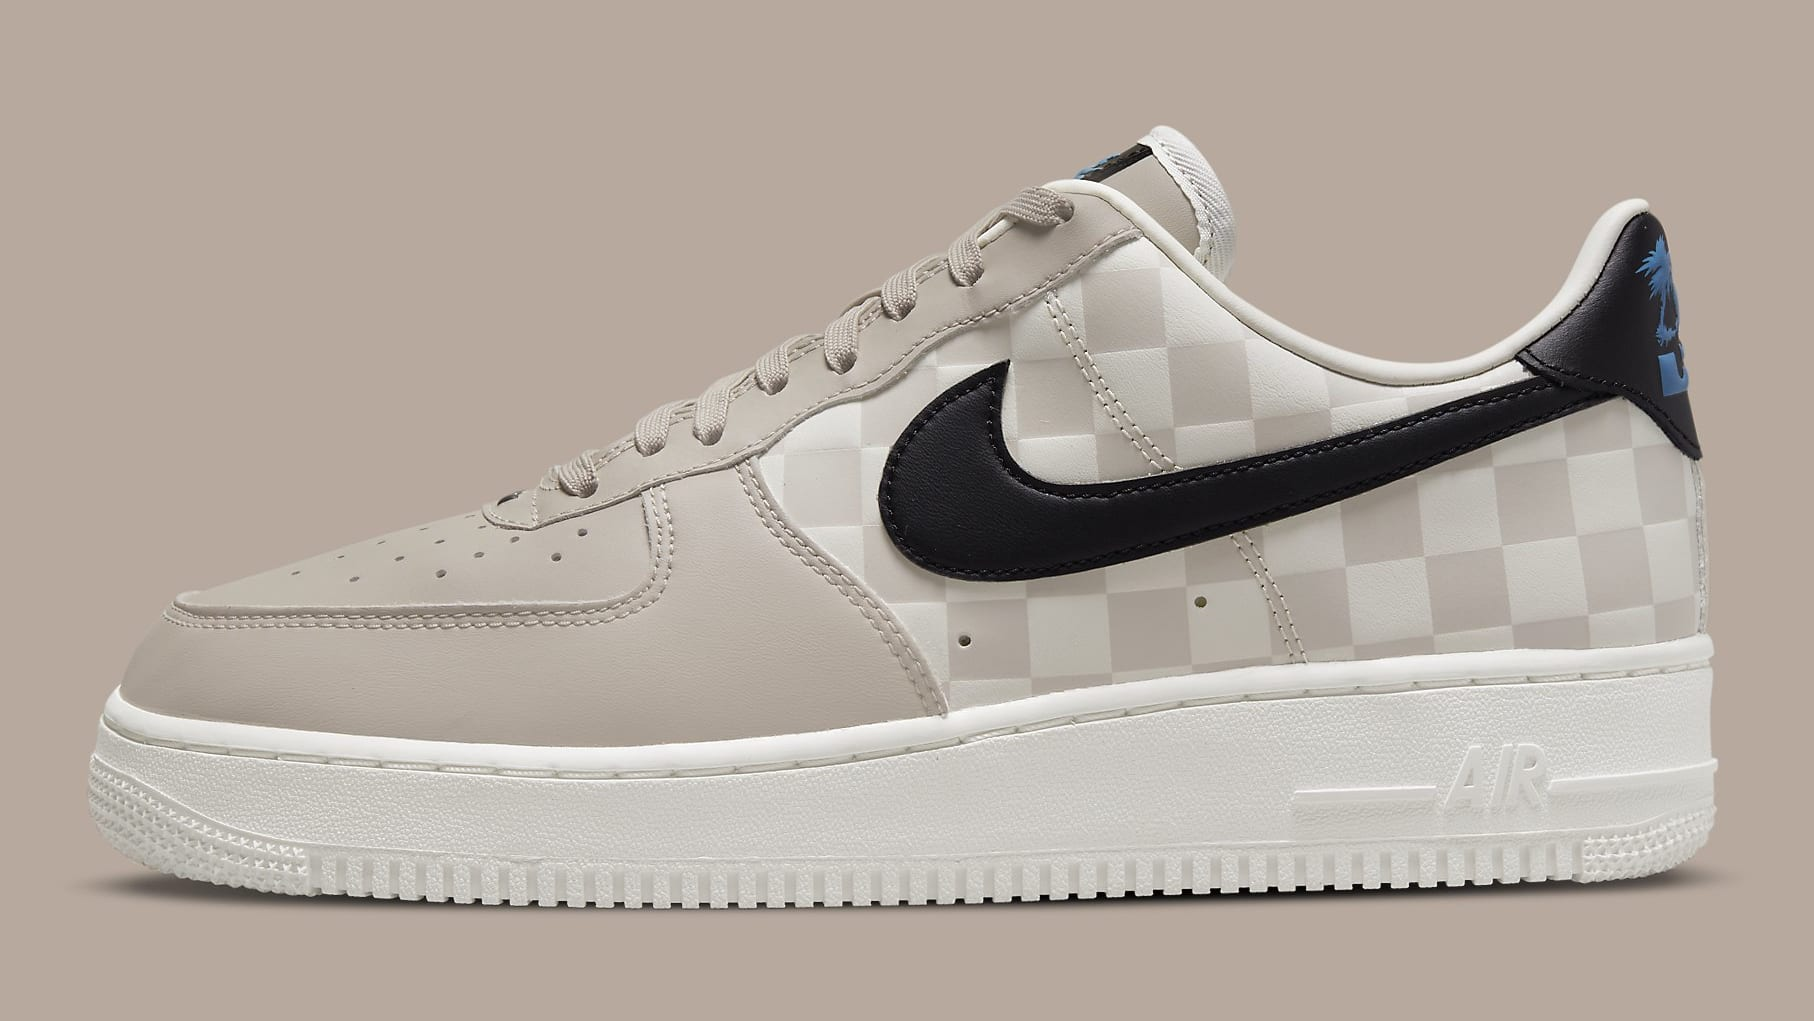 LeBron James x Nike Air Force 1 Low Strive for Greatness Release Date DC8877-200 Profile